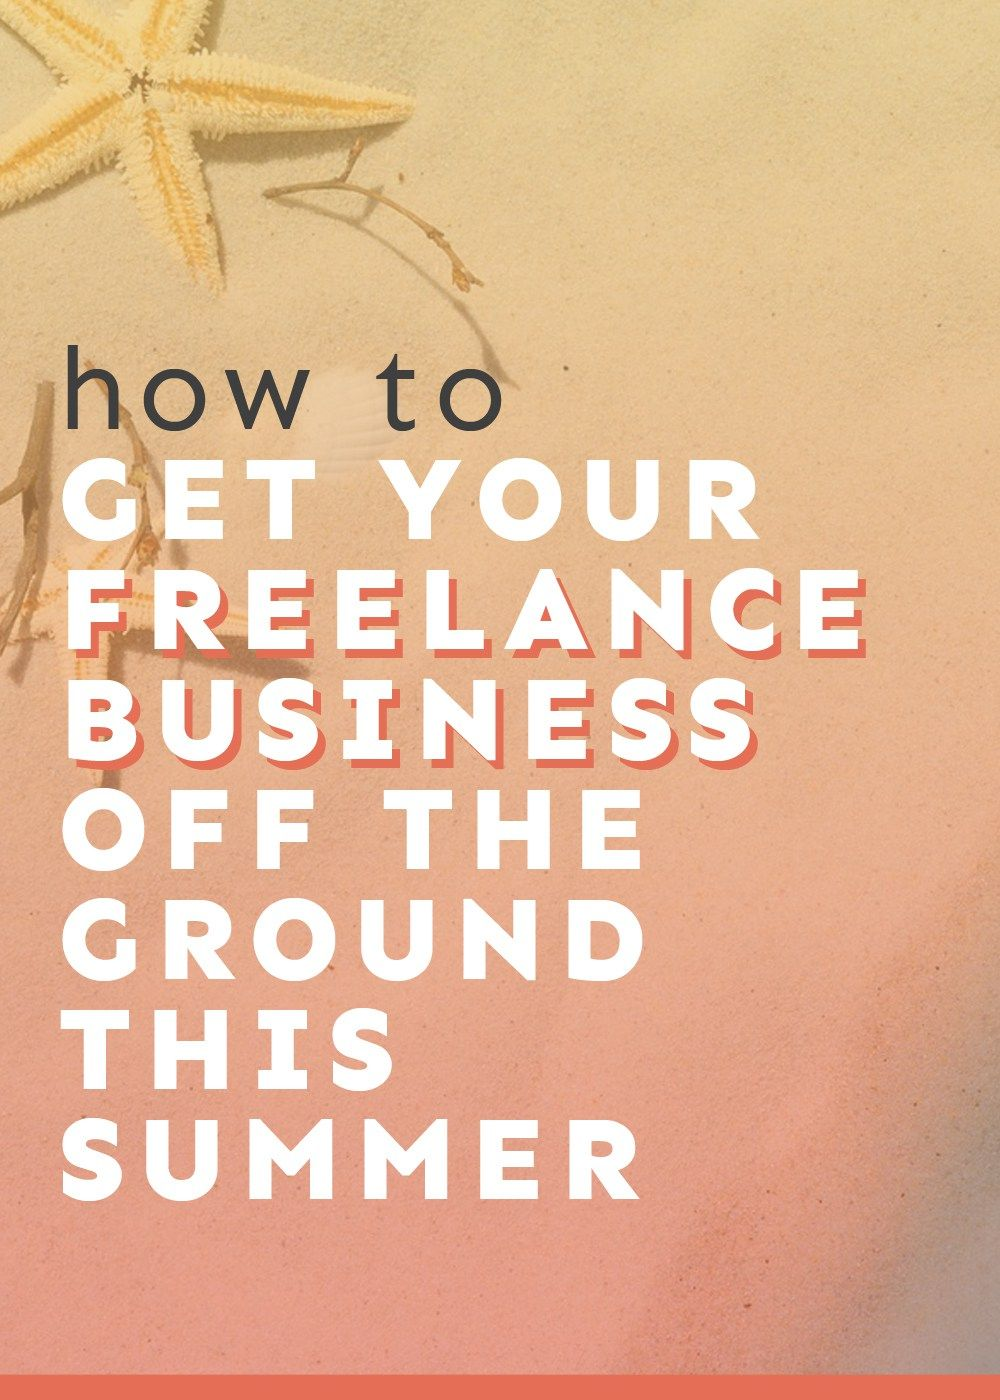 How to Get Your Freelance Business Off the Ground This